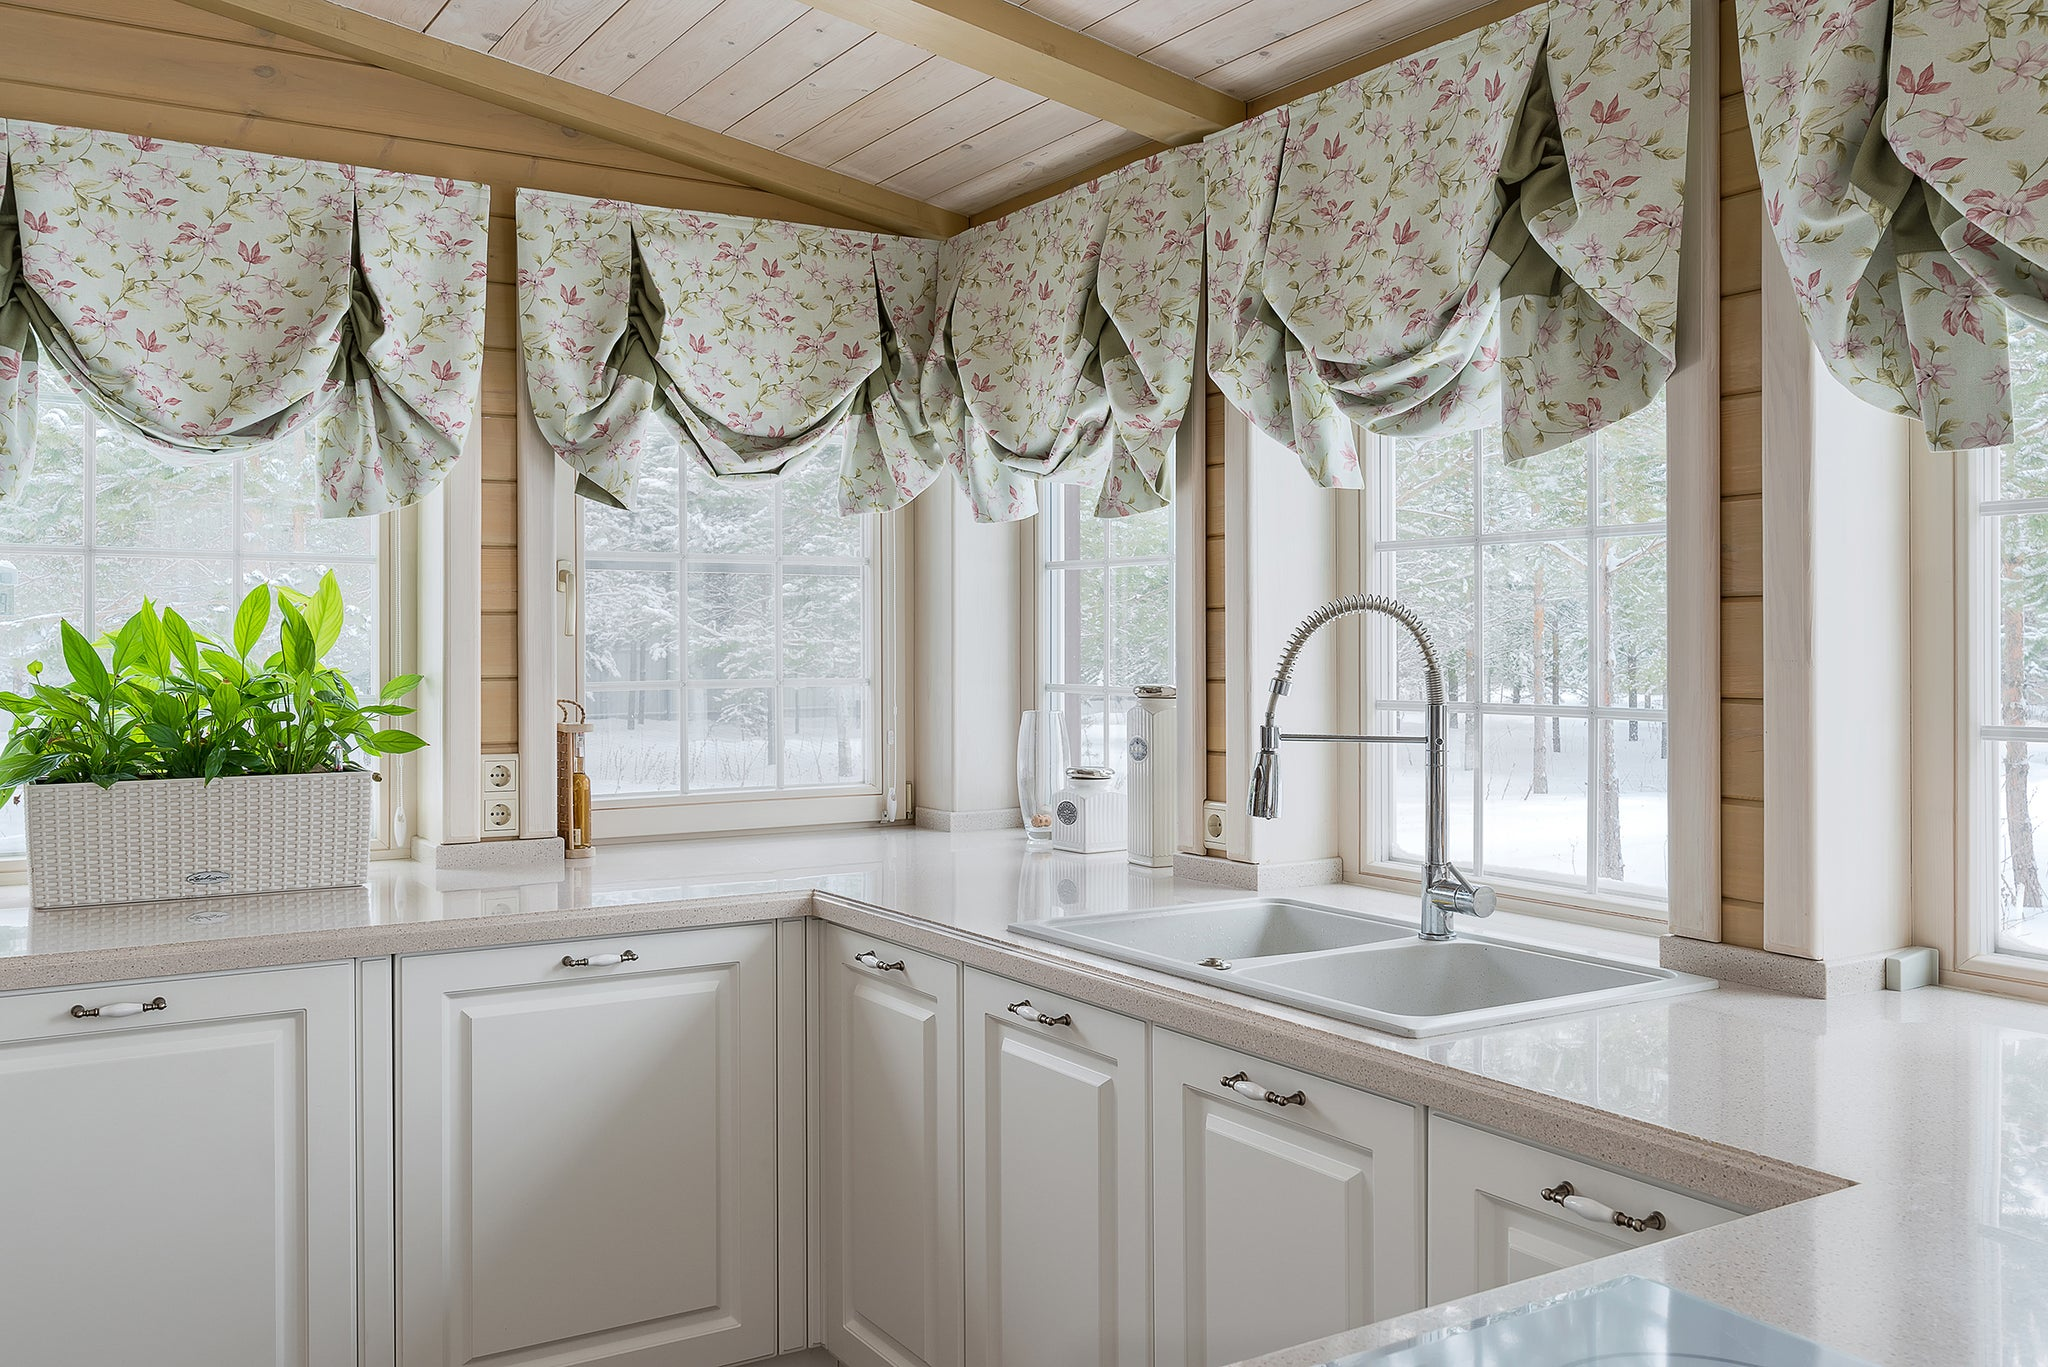 Custom Valences from How to Choose Window Treatments Post